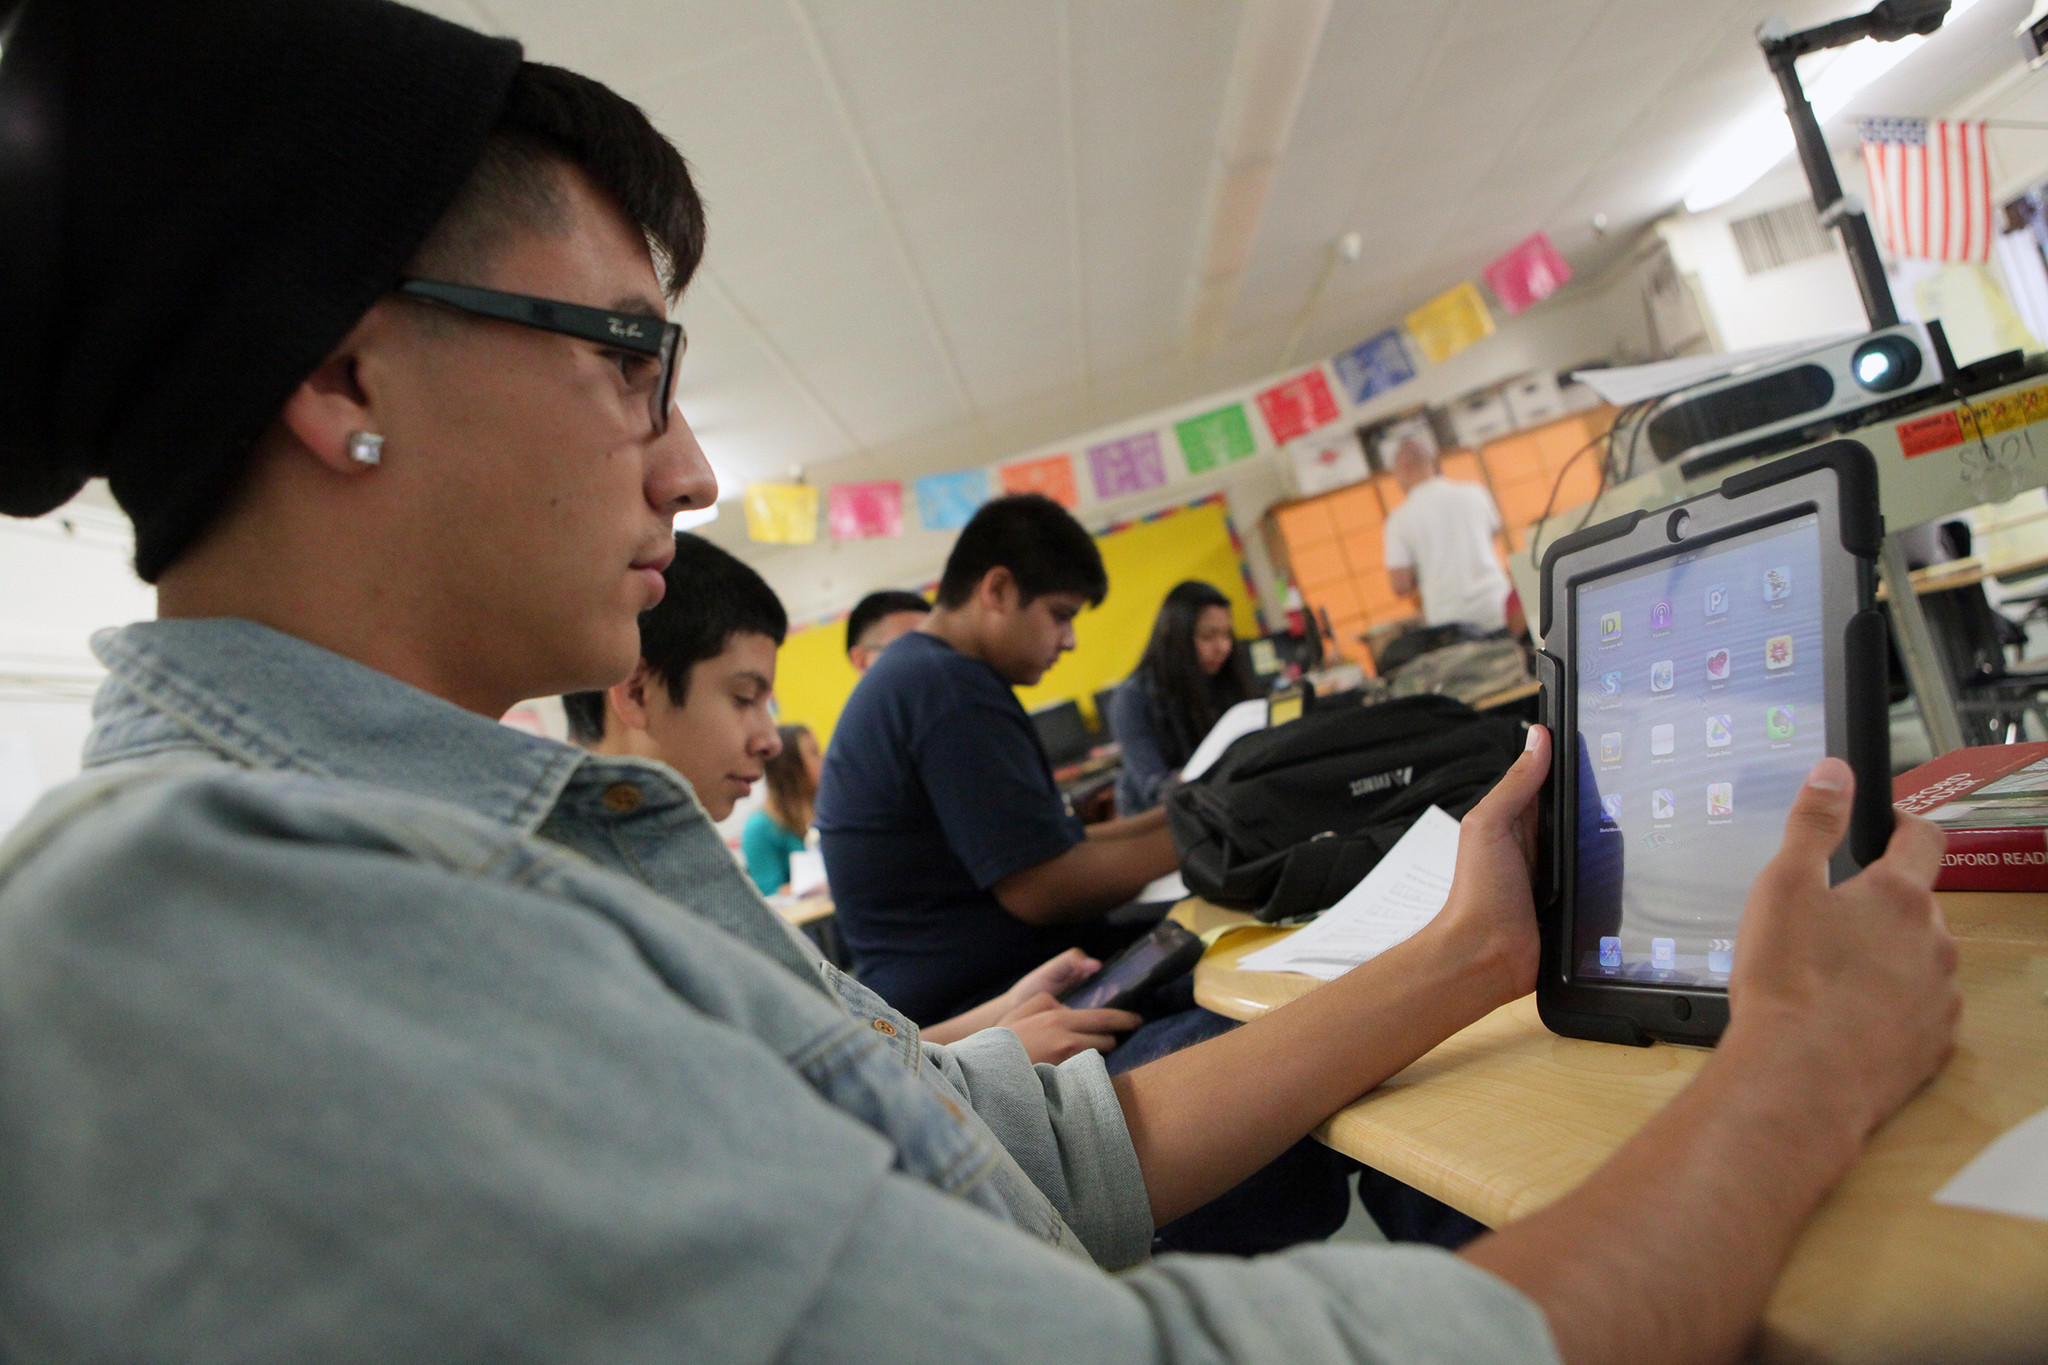 Students at Roosevelt High in Boyle Heights use iPads provided by the school district.